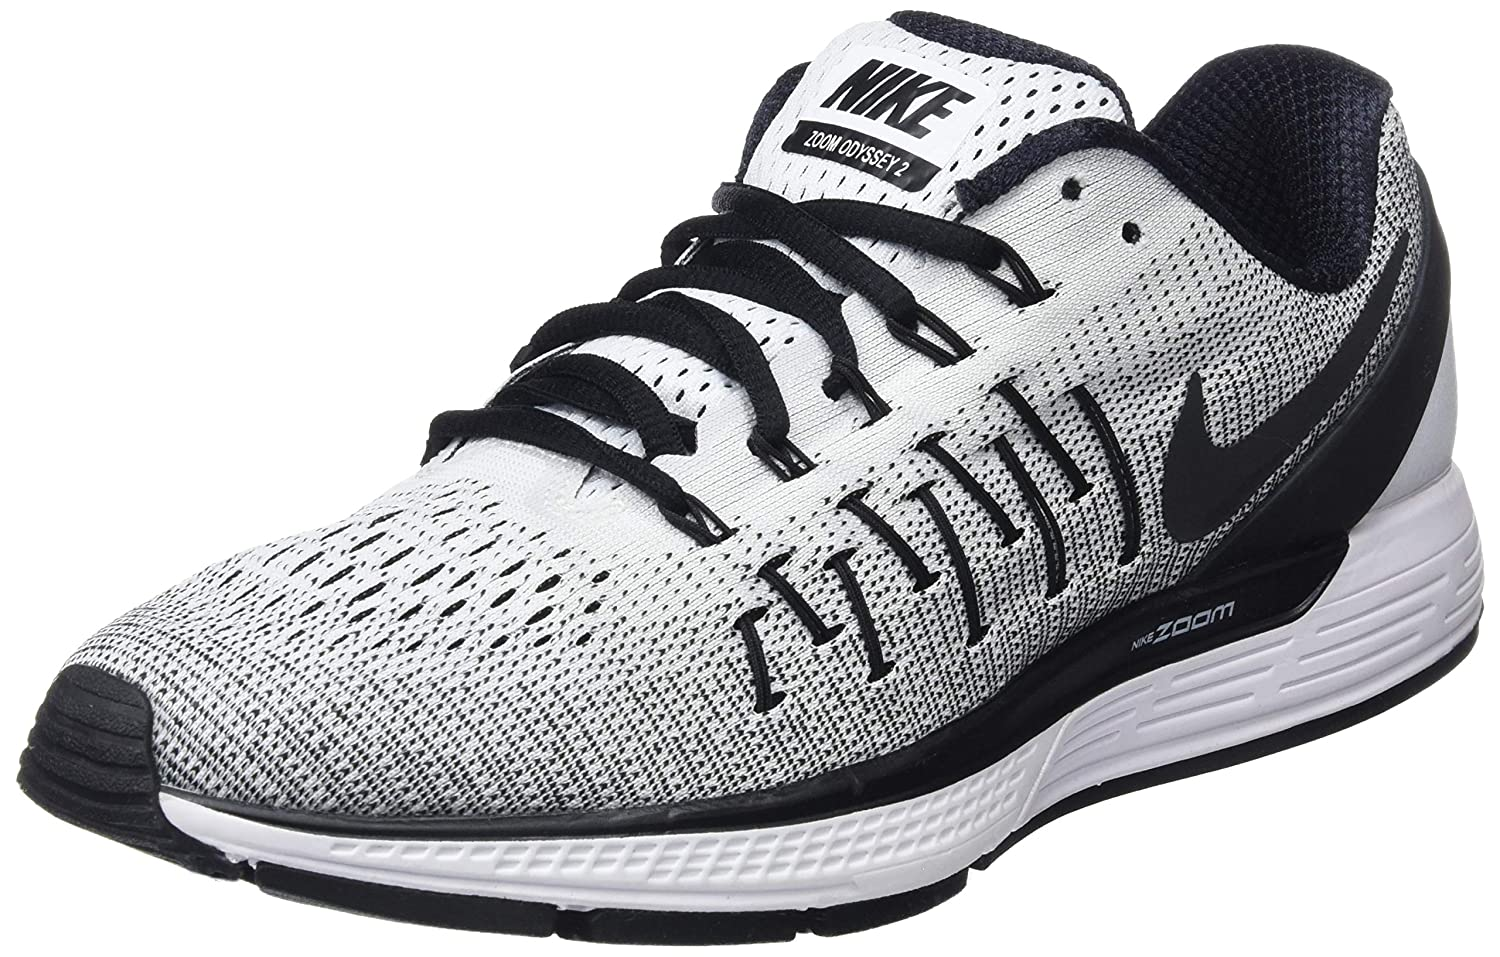 new styles 49aae 352da Nike Mens Air Zoom Odyssey 2 WhiteBlack Running Shoe 12. 5 Men US Buy  Online at Low Prices in India - Amazon.in